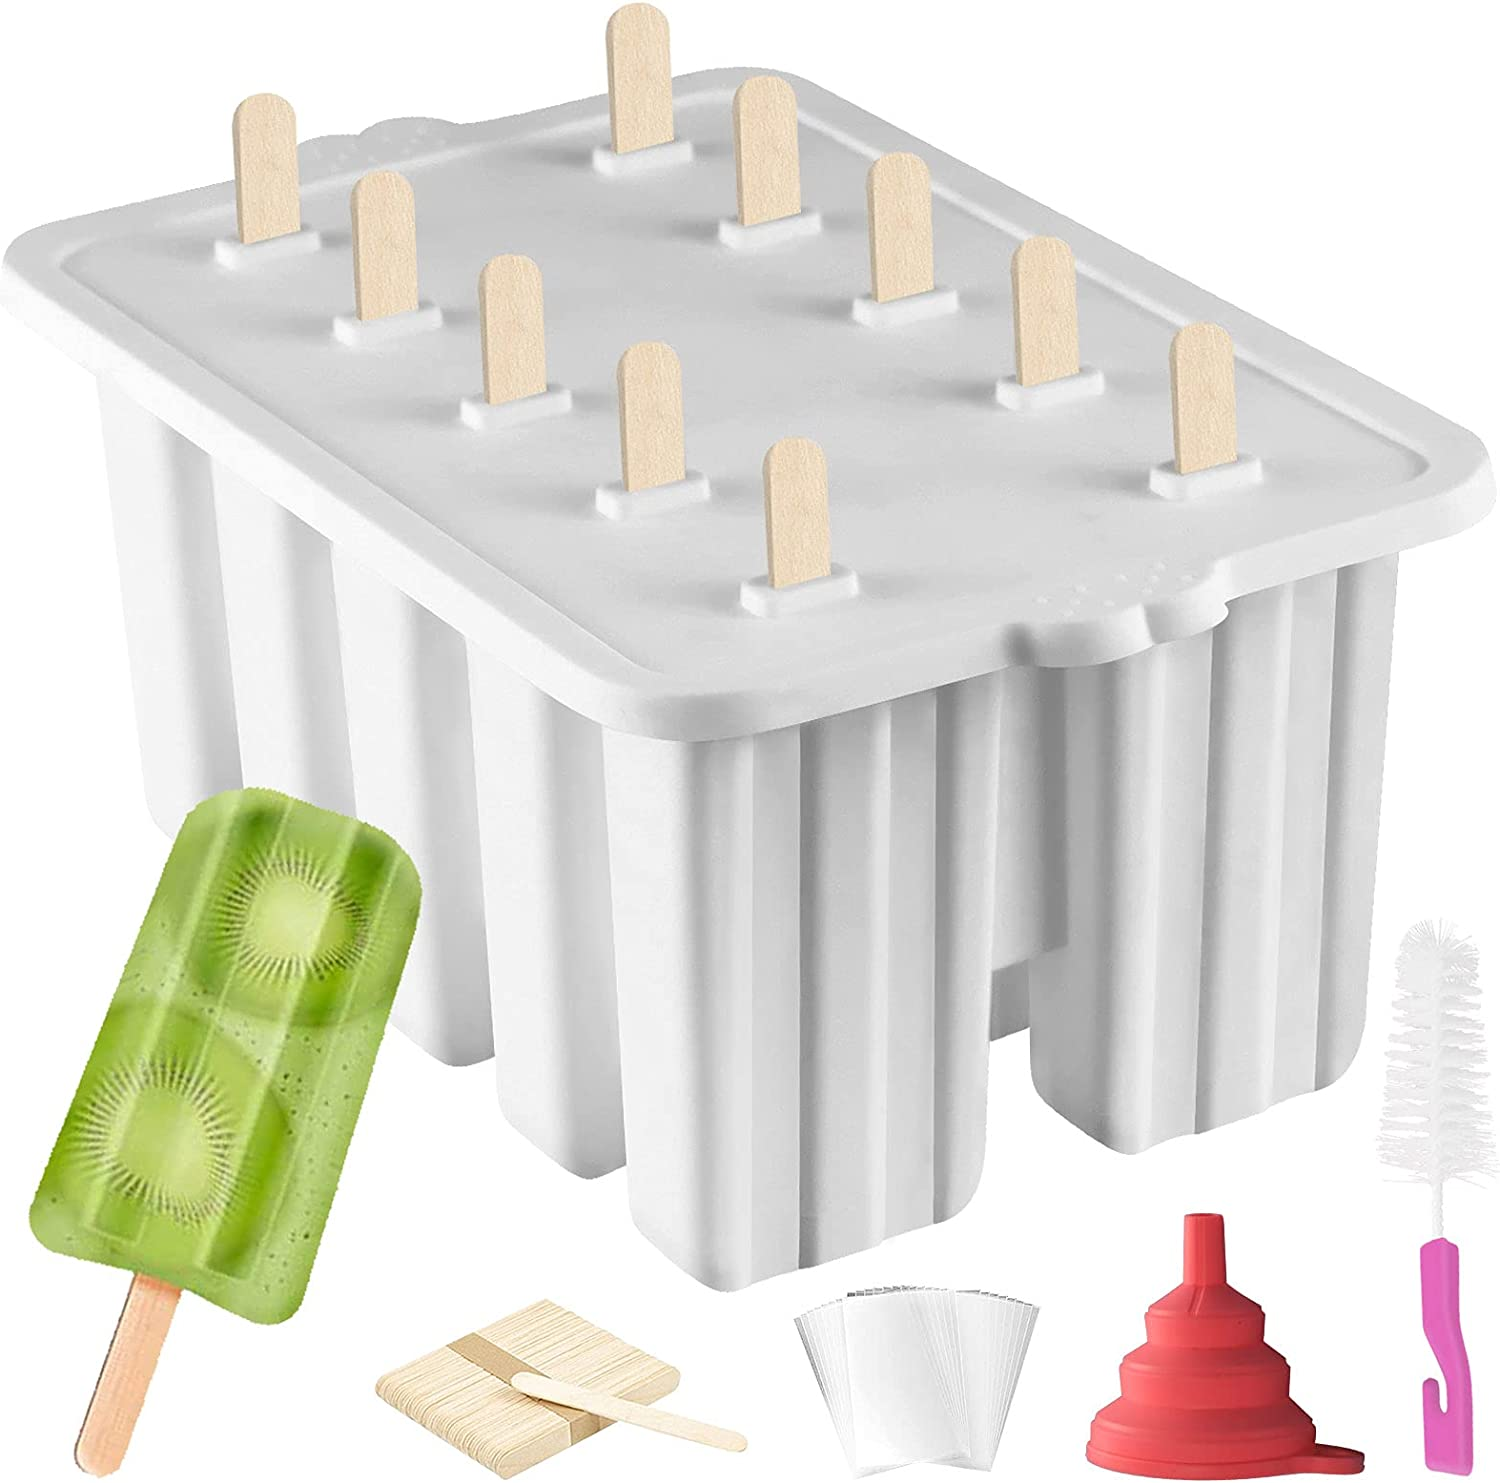 Silicone Popsicle Molds Popsicle Maker,10 Cavity Homemade ICE Pop Molds Food Grade BPA-Free Popsicle Mold with Popsicle Sticks Popsicle Bags A Funnel,Cleaning Brush Popcycle mold